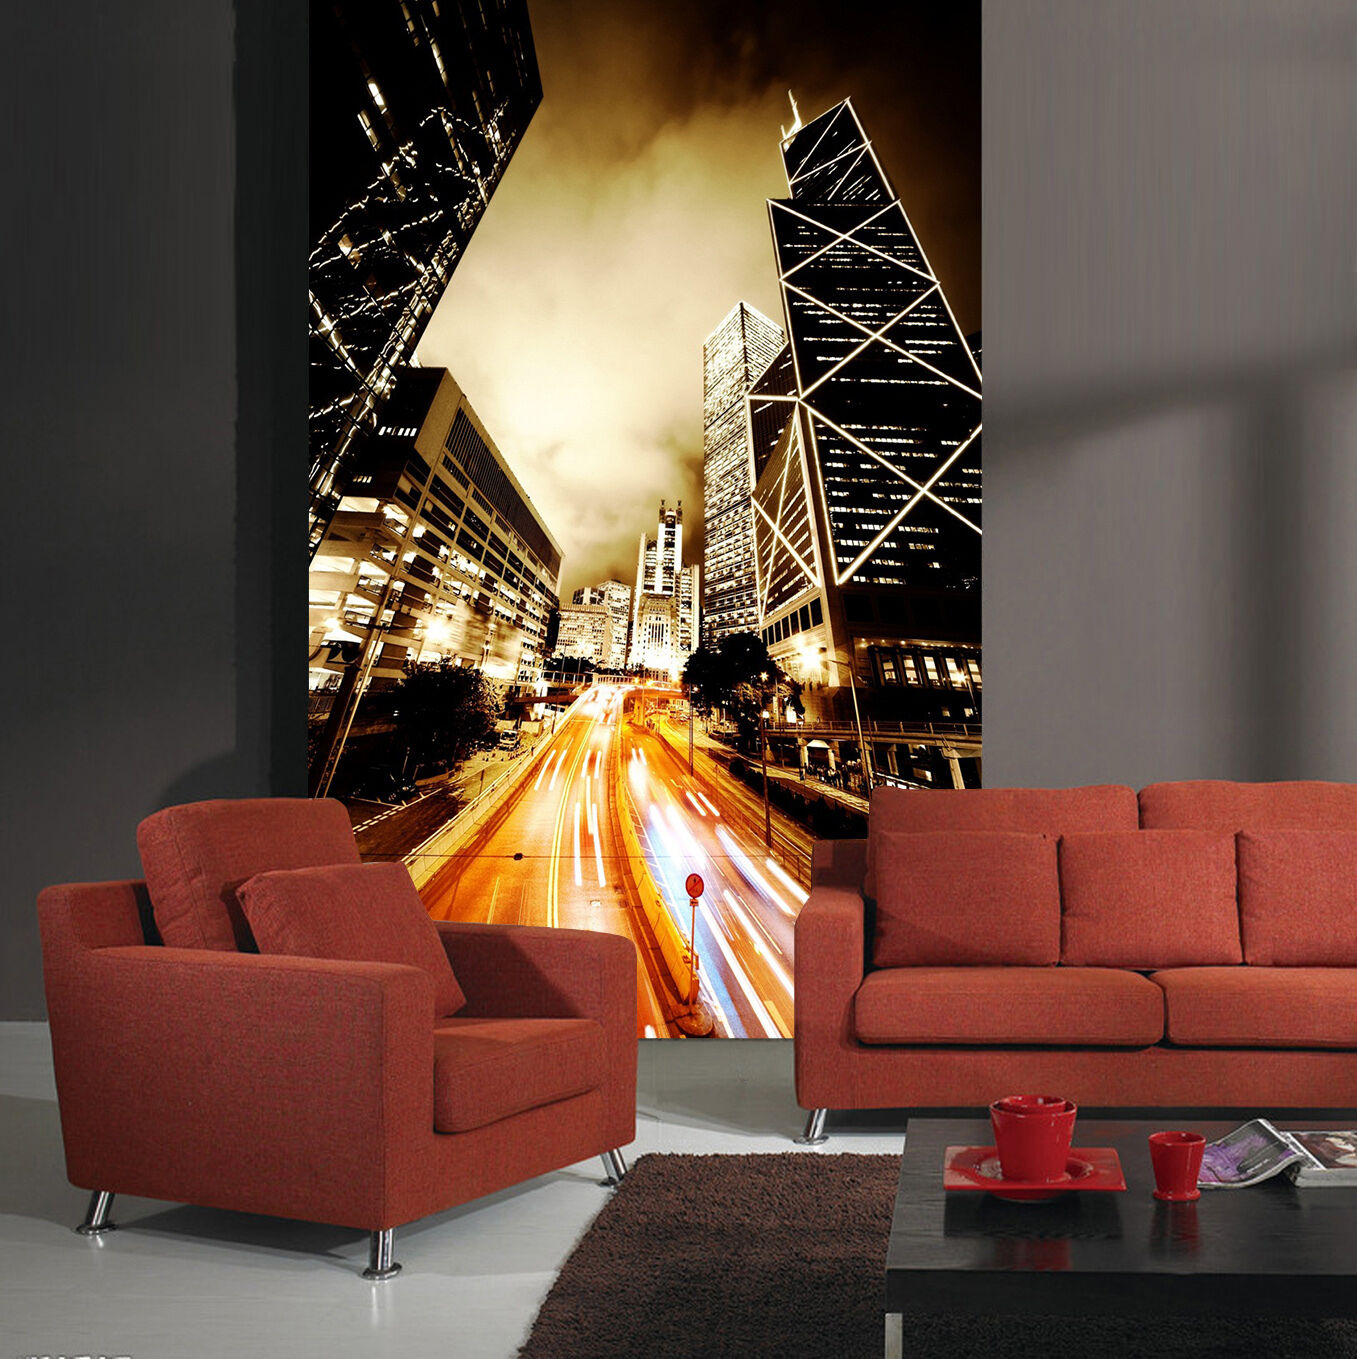 3D Street Buildings 112 WallPaper Murals Wall Print Decal Wall Deco AJ WALLPAPER